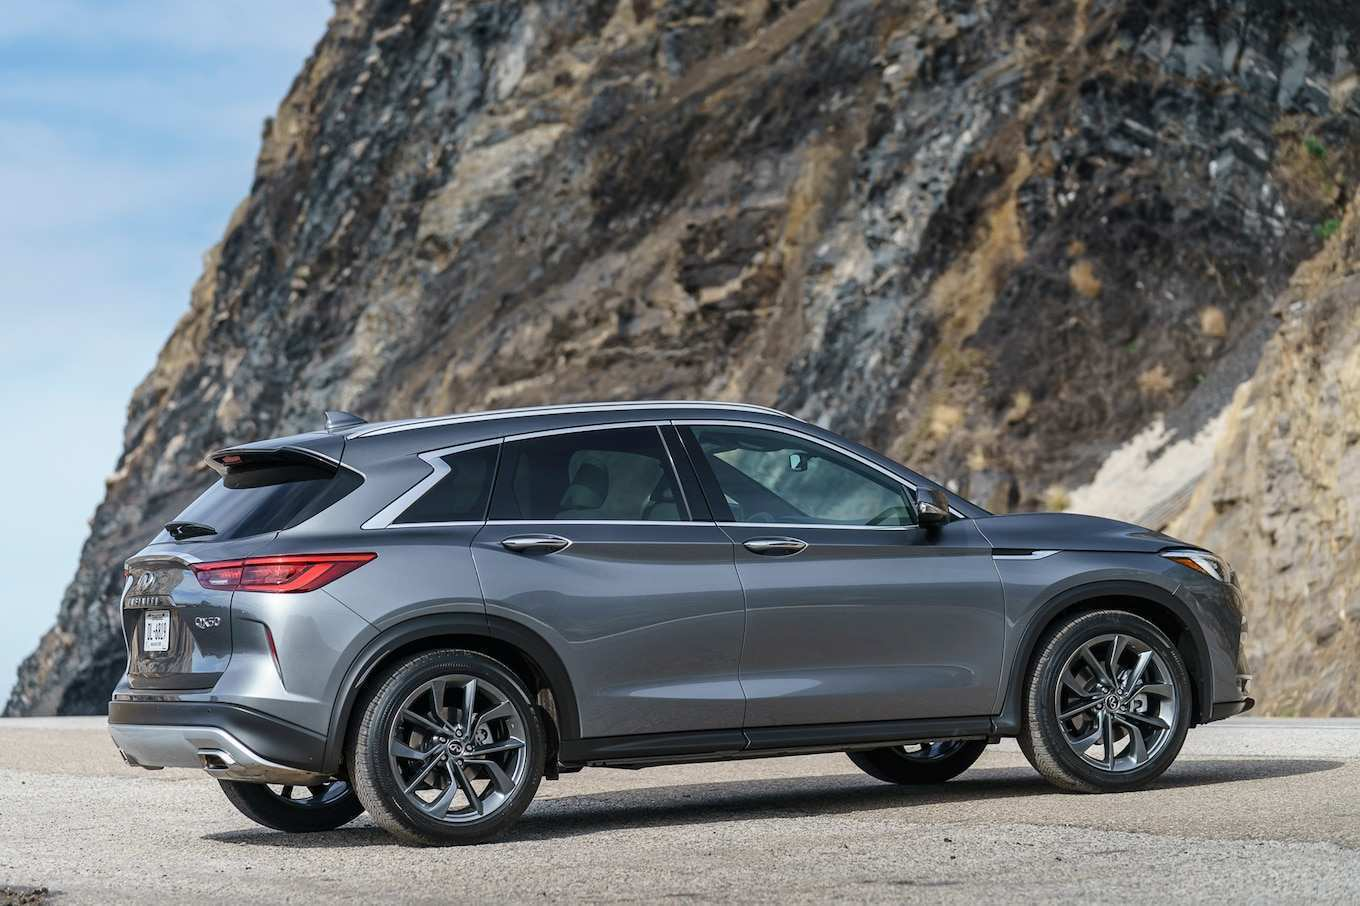 31 New 2019 Infiniti Qx50 Review Specs with 2019 Infiniti Qx50 Review